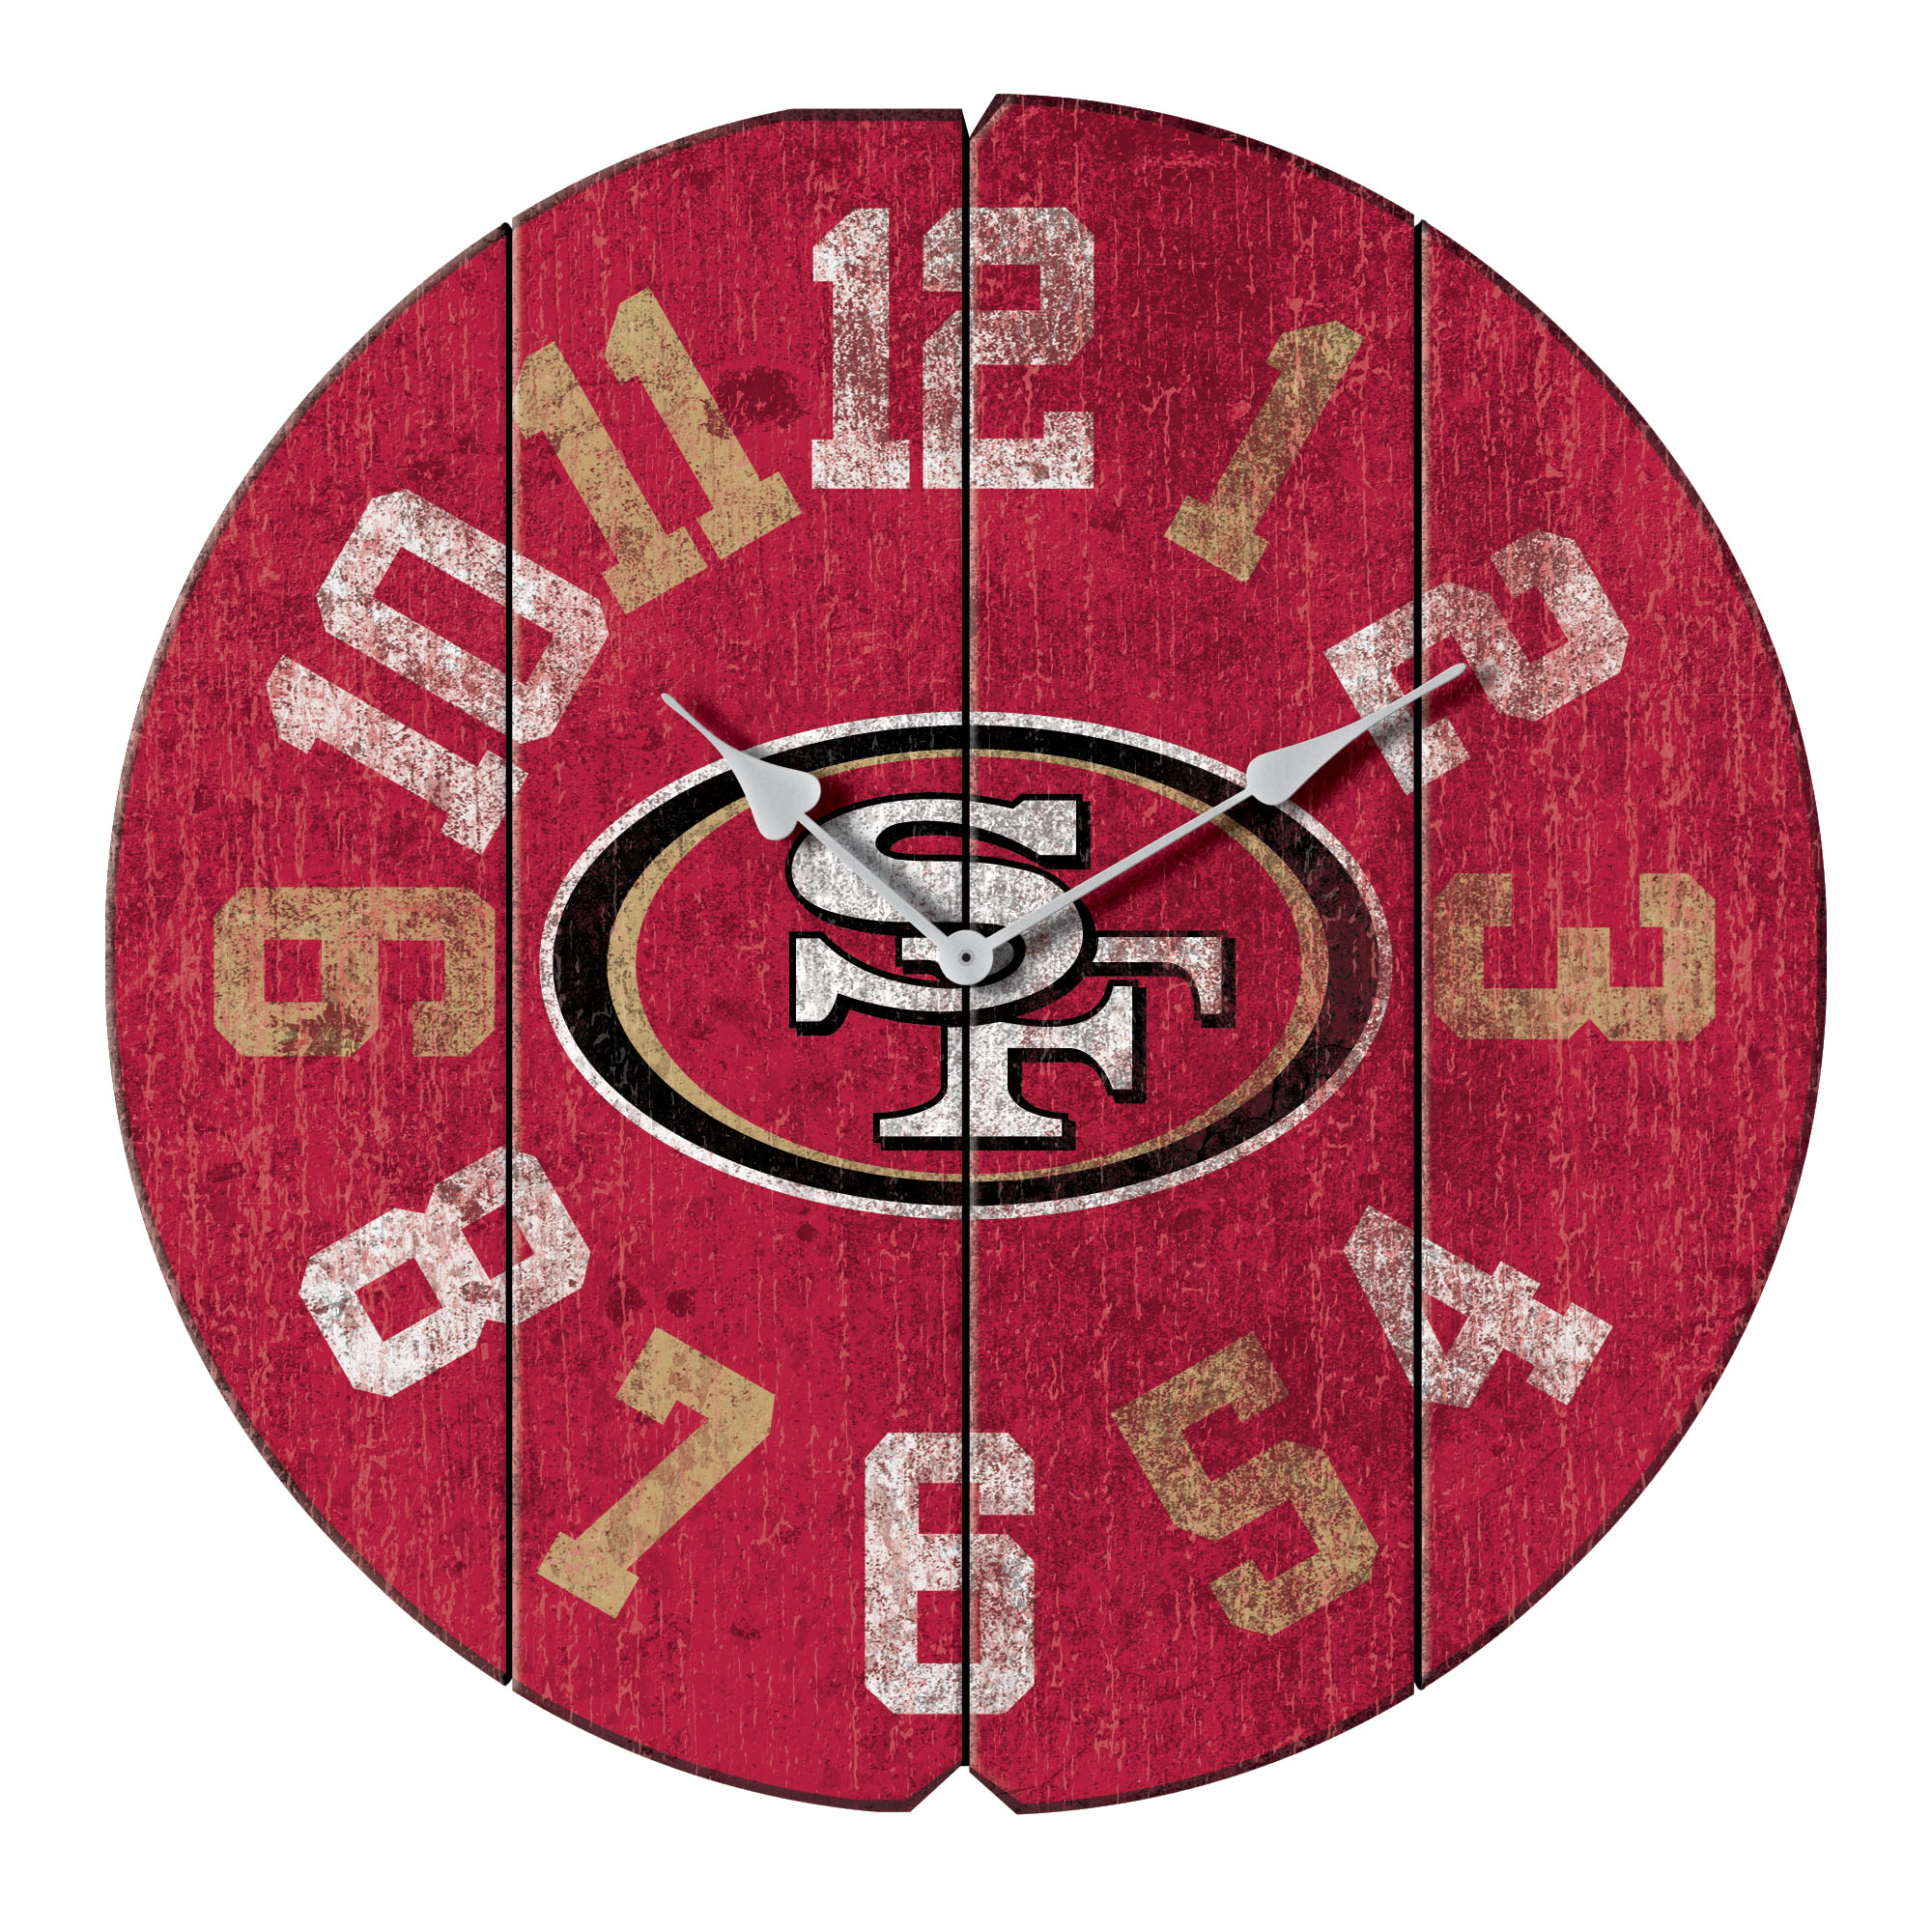 "San Francisco 49ers 16"" Vintage Round Wall Clock - Scarlet - No Size"